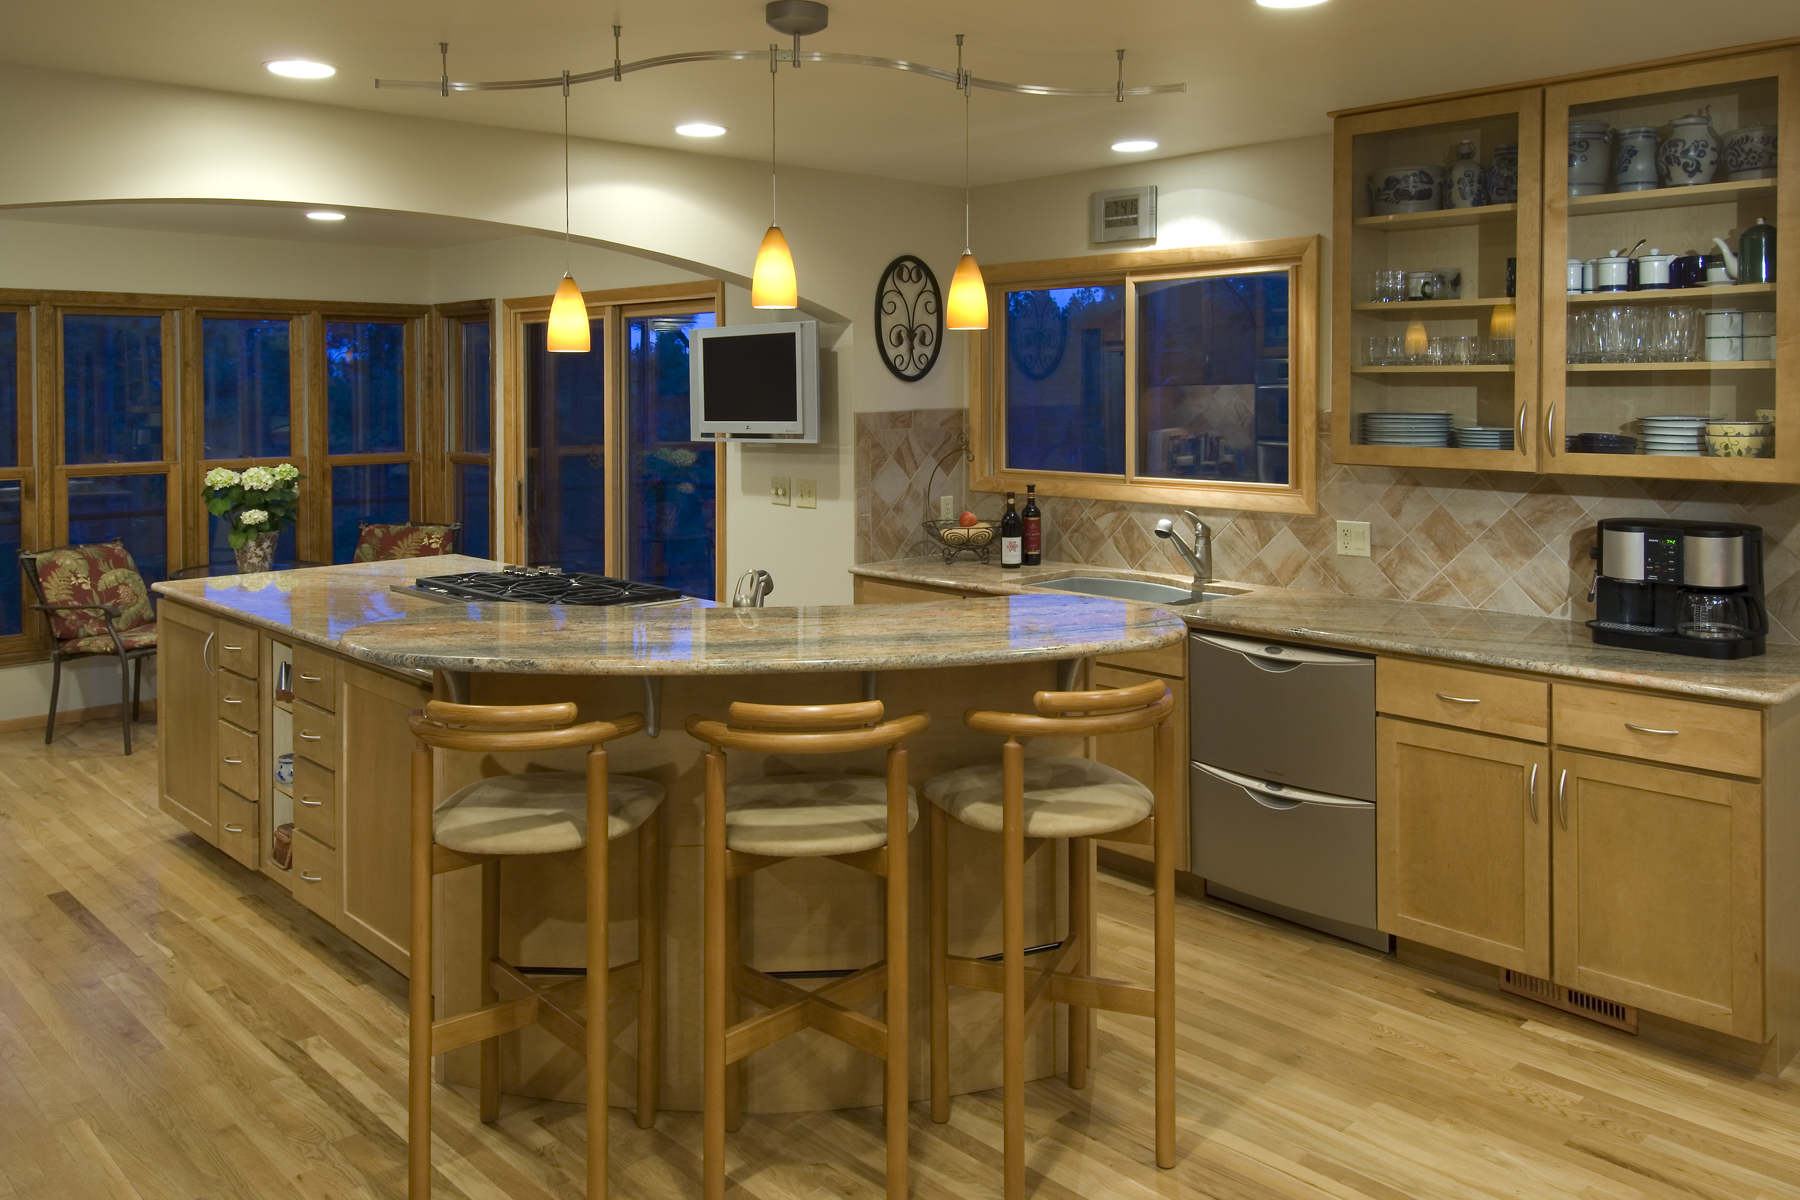 Kitchen remodeling in colorado springs co kitchen - Bathroom remodel colorado springs ...